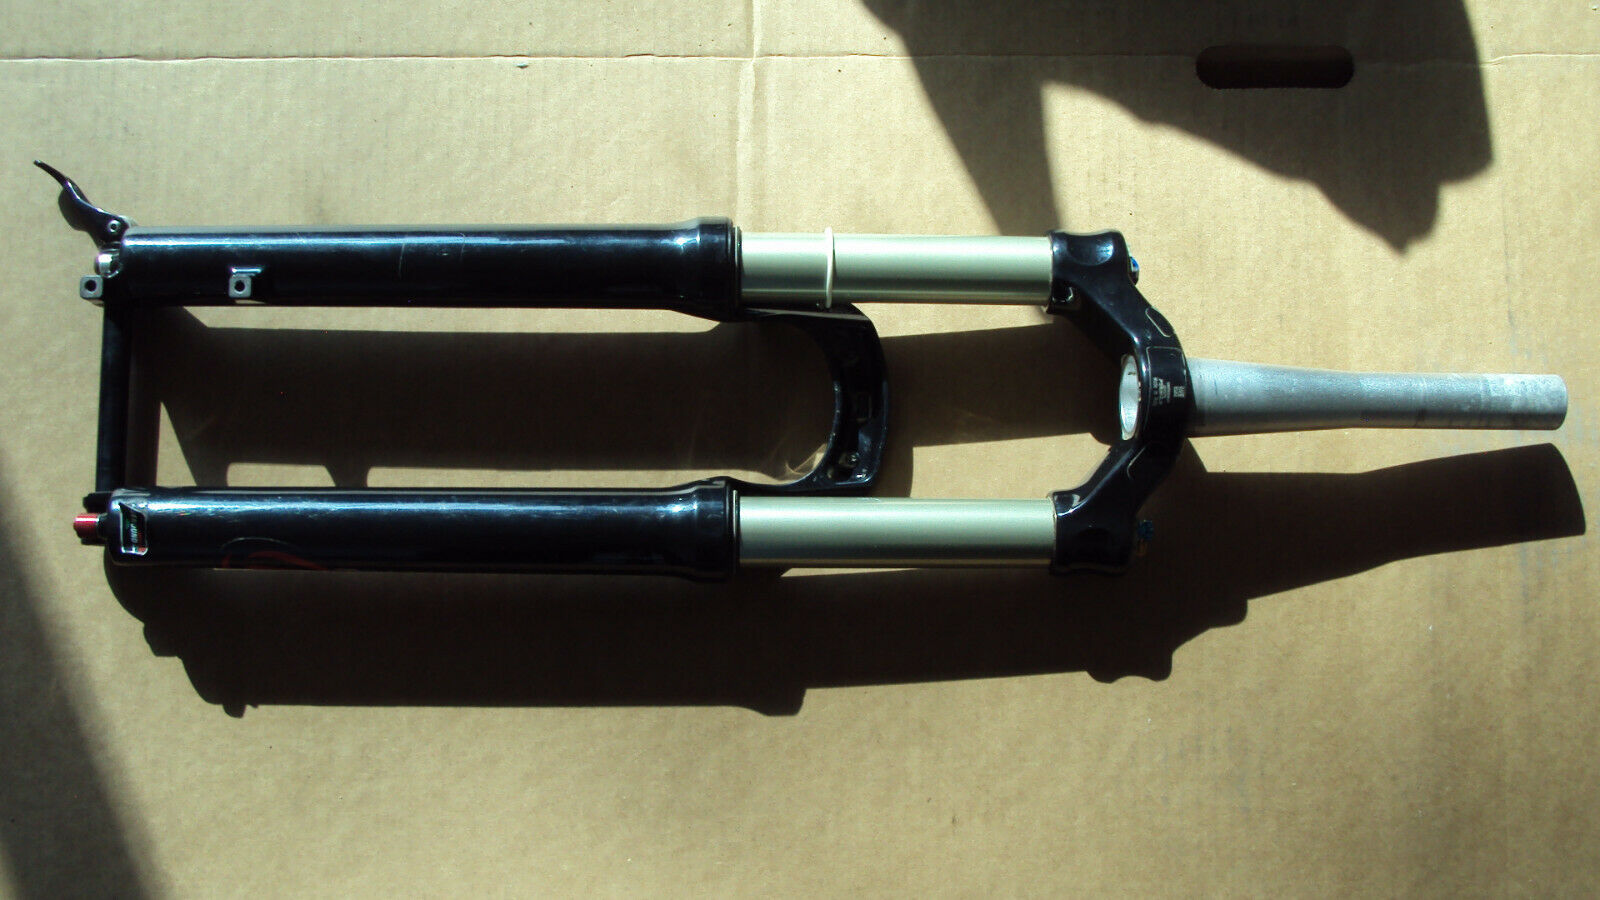 Formula 35 Fork for 27.5 wheel 150mm travel 7.75  taperot steer tube 15x100